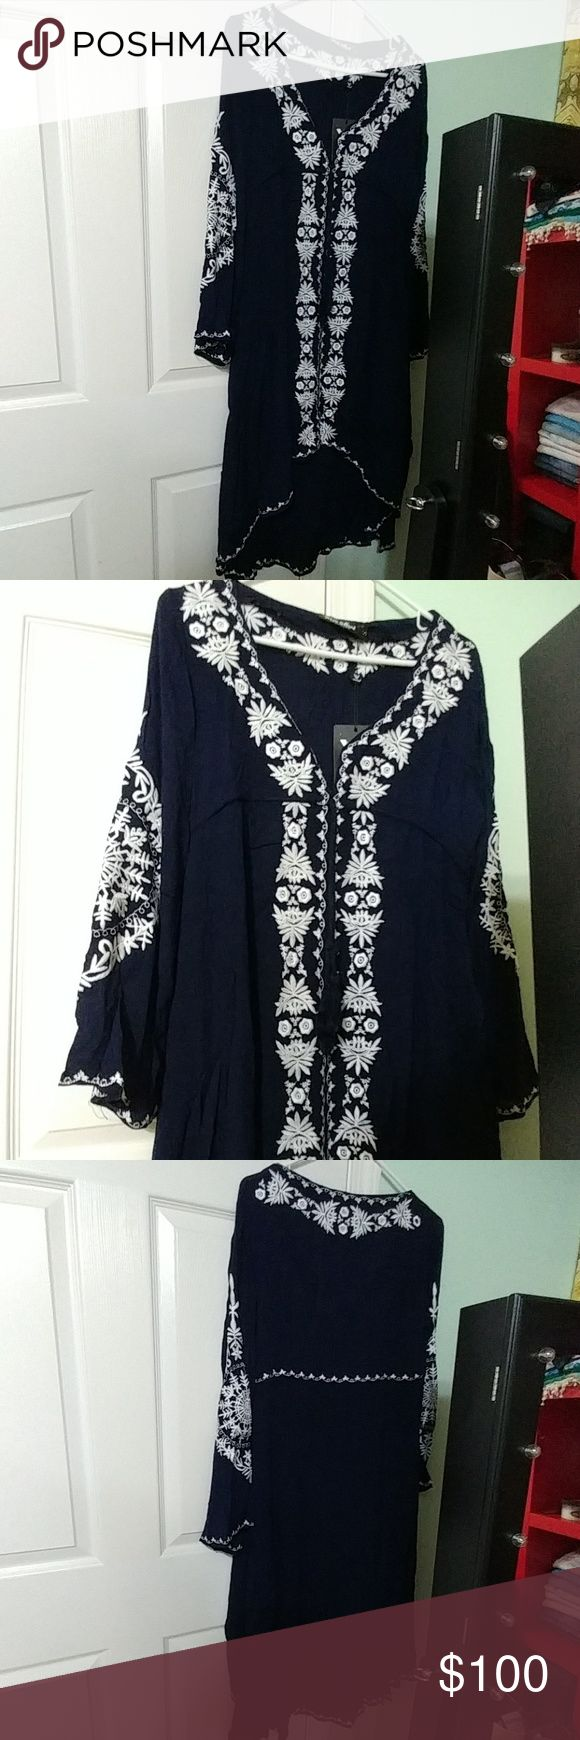 Dark blue and white beach dress by White Mark New with tags. Size Medium. Beautiful dress. White Mark Dresses Long Sleeve